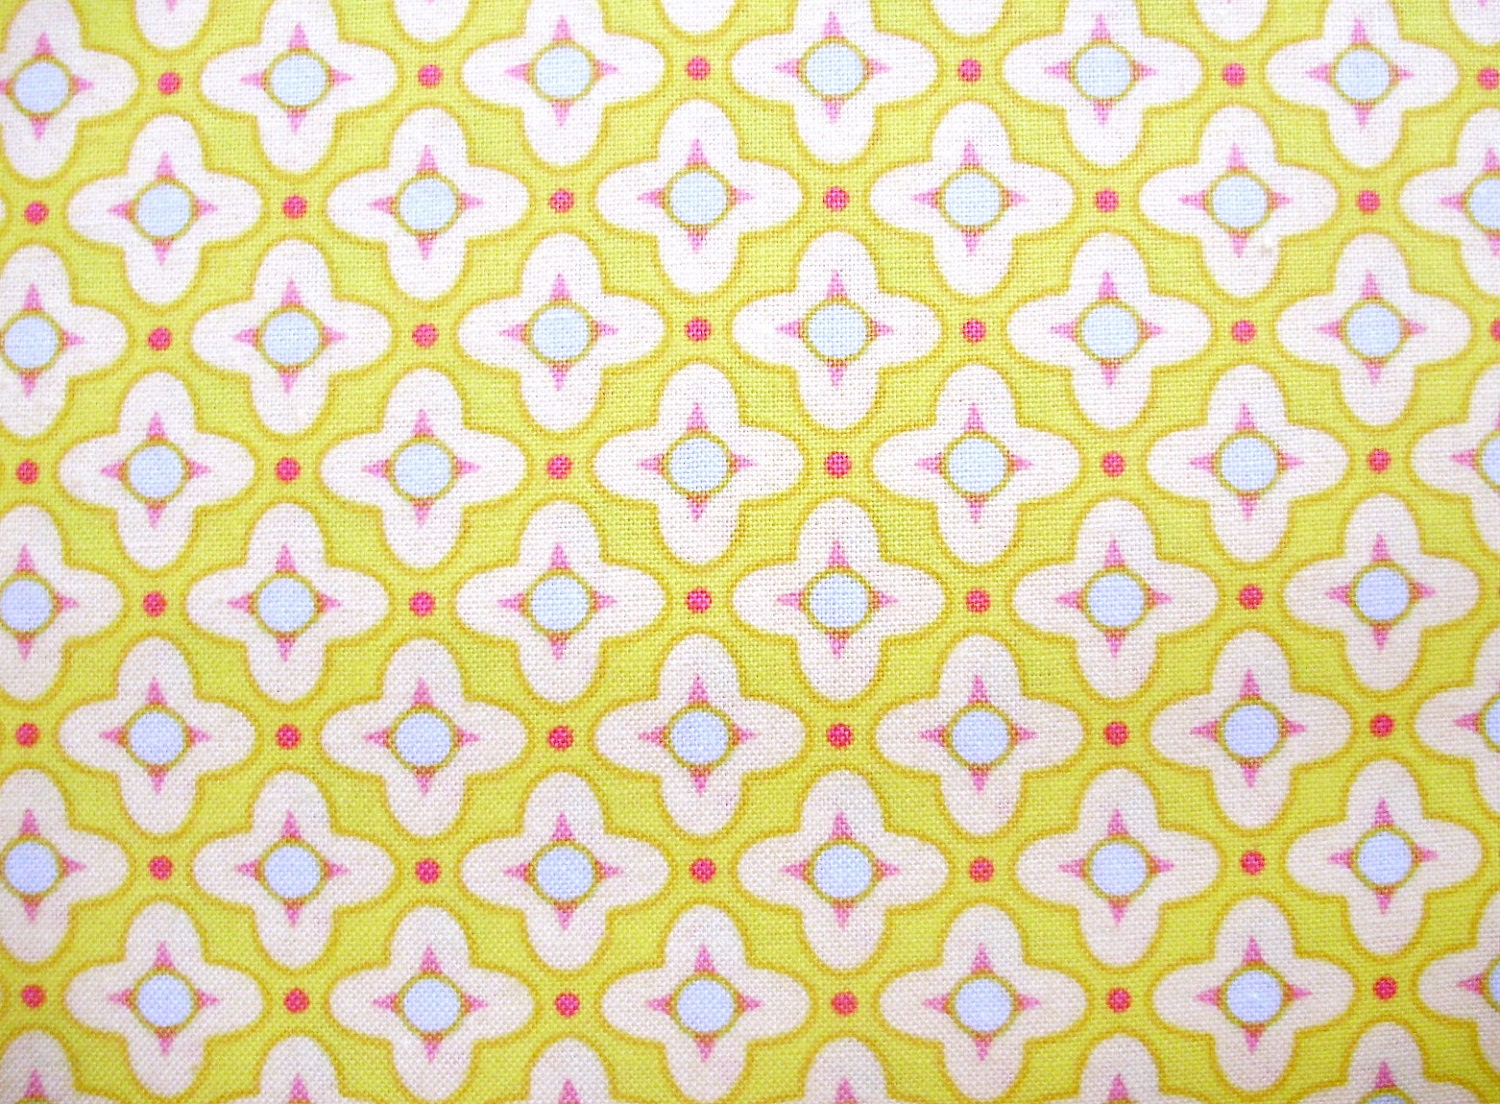 Heather Bailey Bijoux Tiled Primrose in Gold 1 Yard